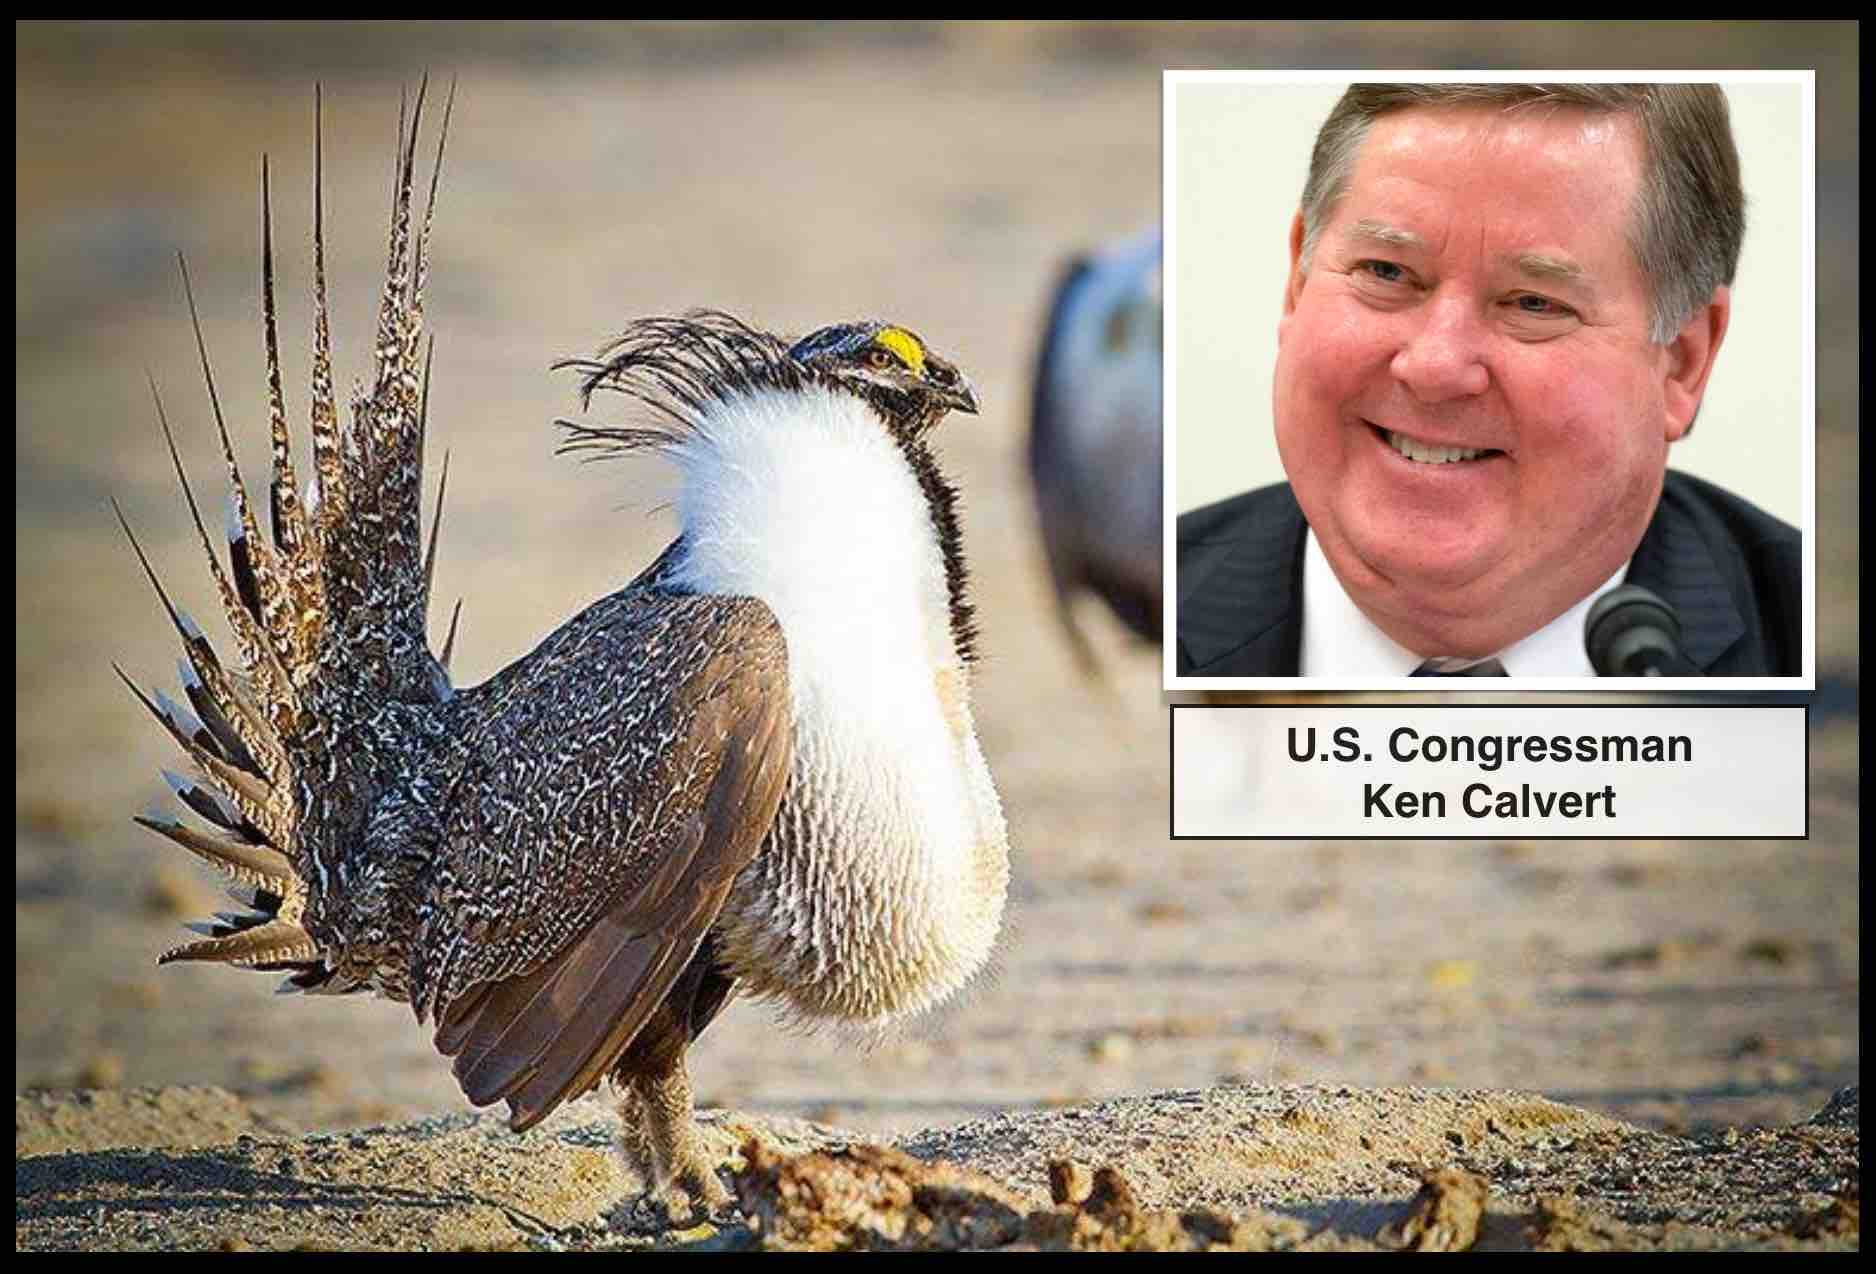 On May 24th, representative Ken Calvert introduced legislation to permanently prevent the greater sage grouse from being listed under the ESA.